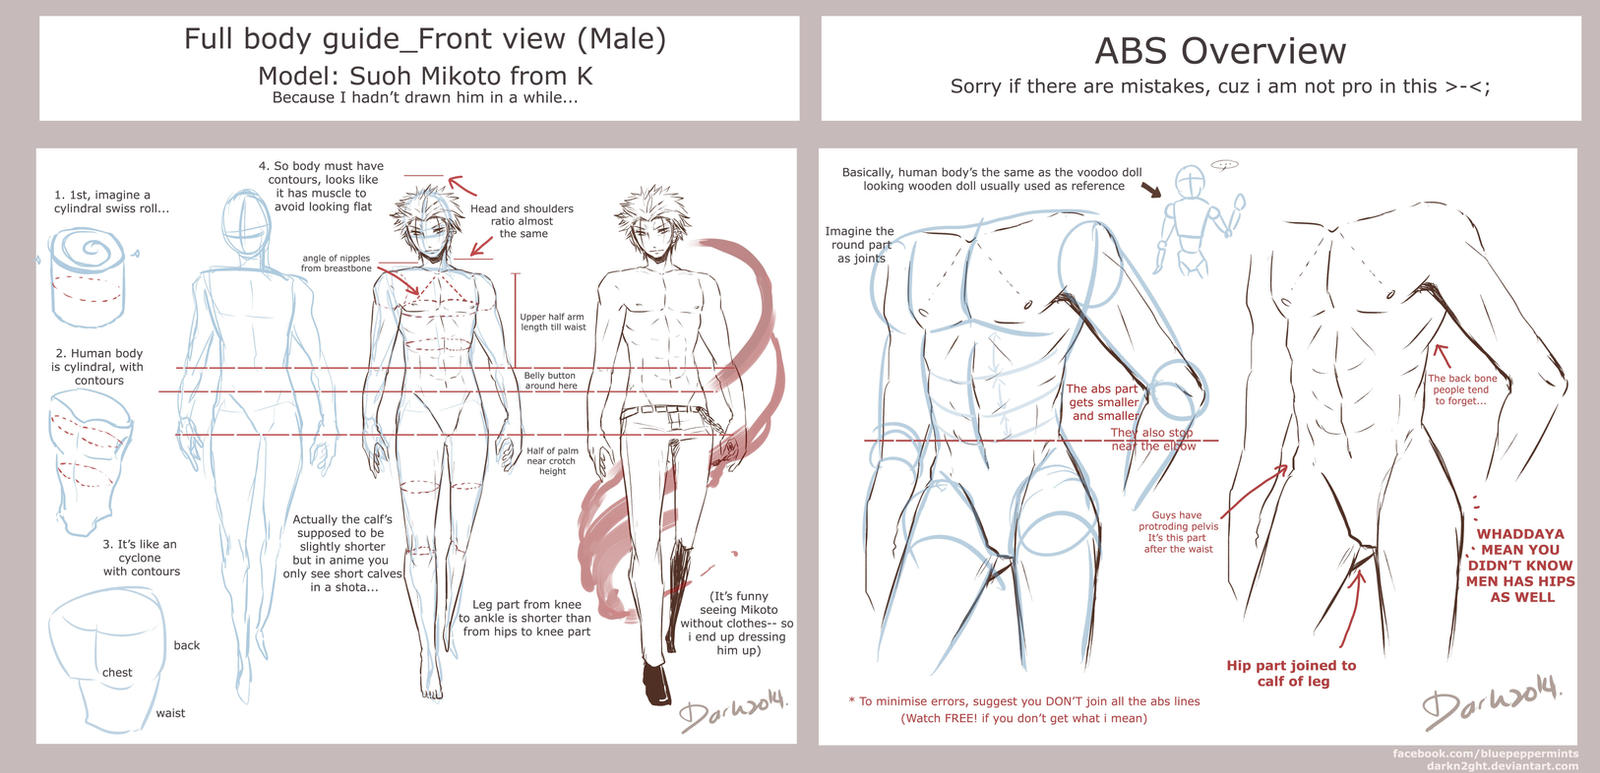 Abs And Full Body Guide For Male Tutorial By Darkn2ght On